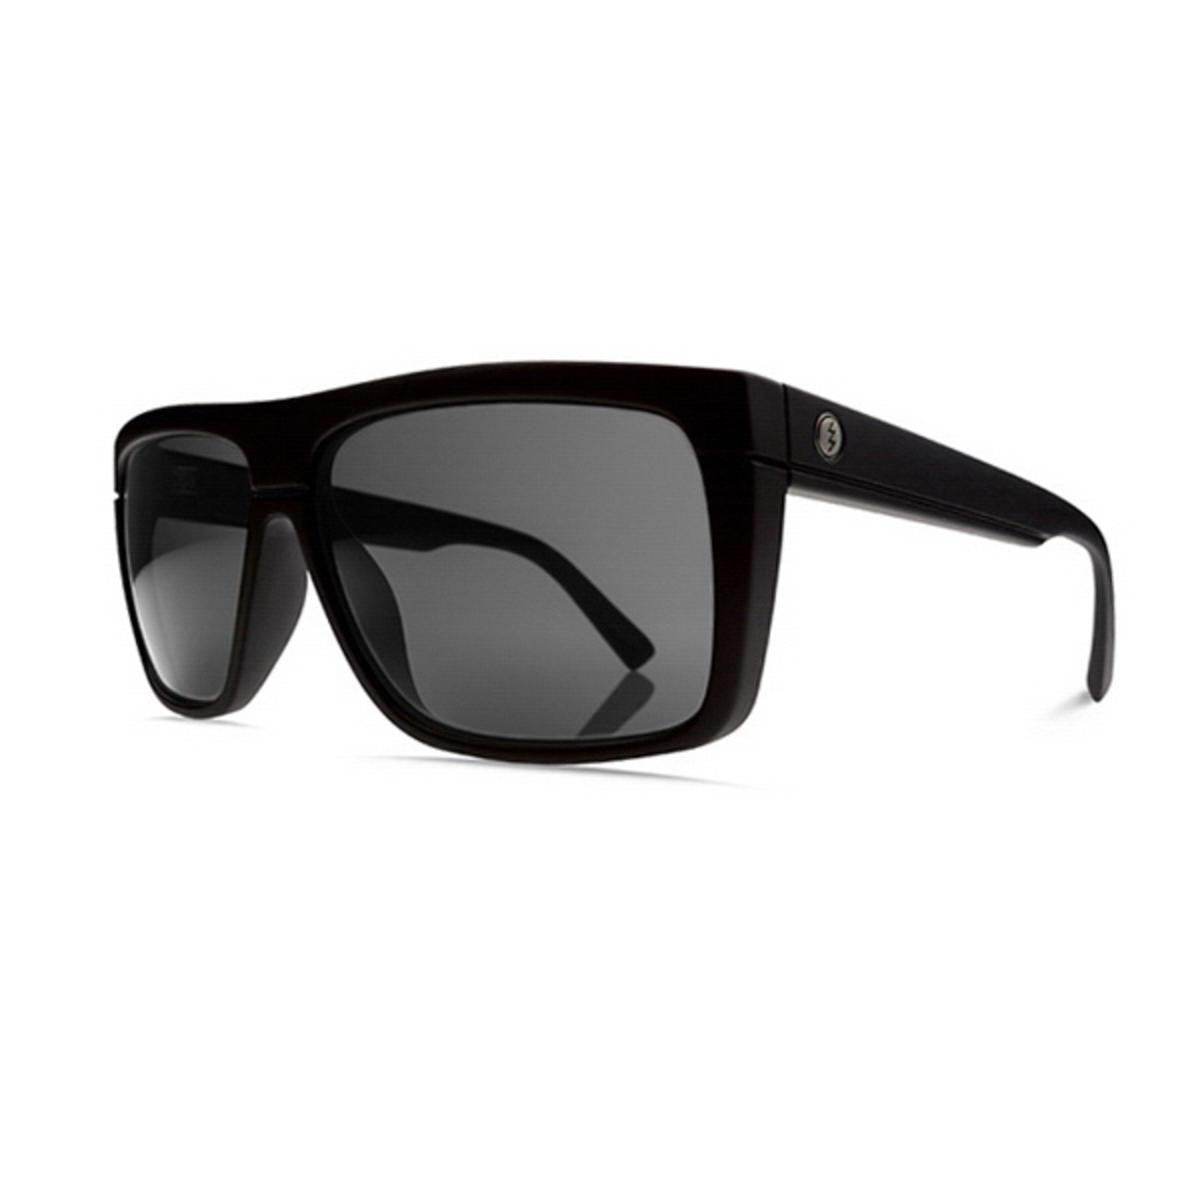 Electric Black Top Sunglasses